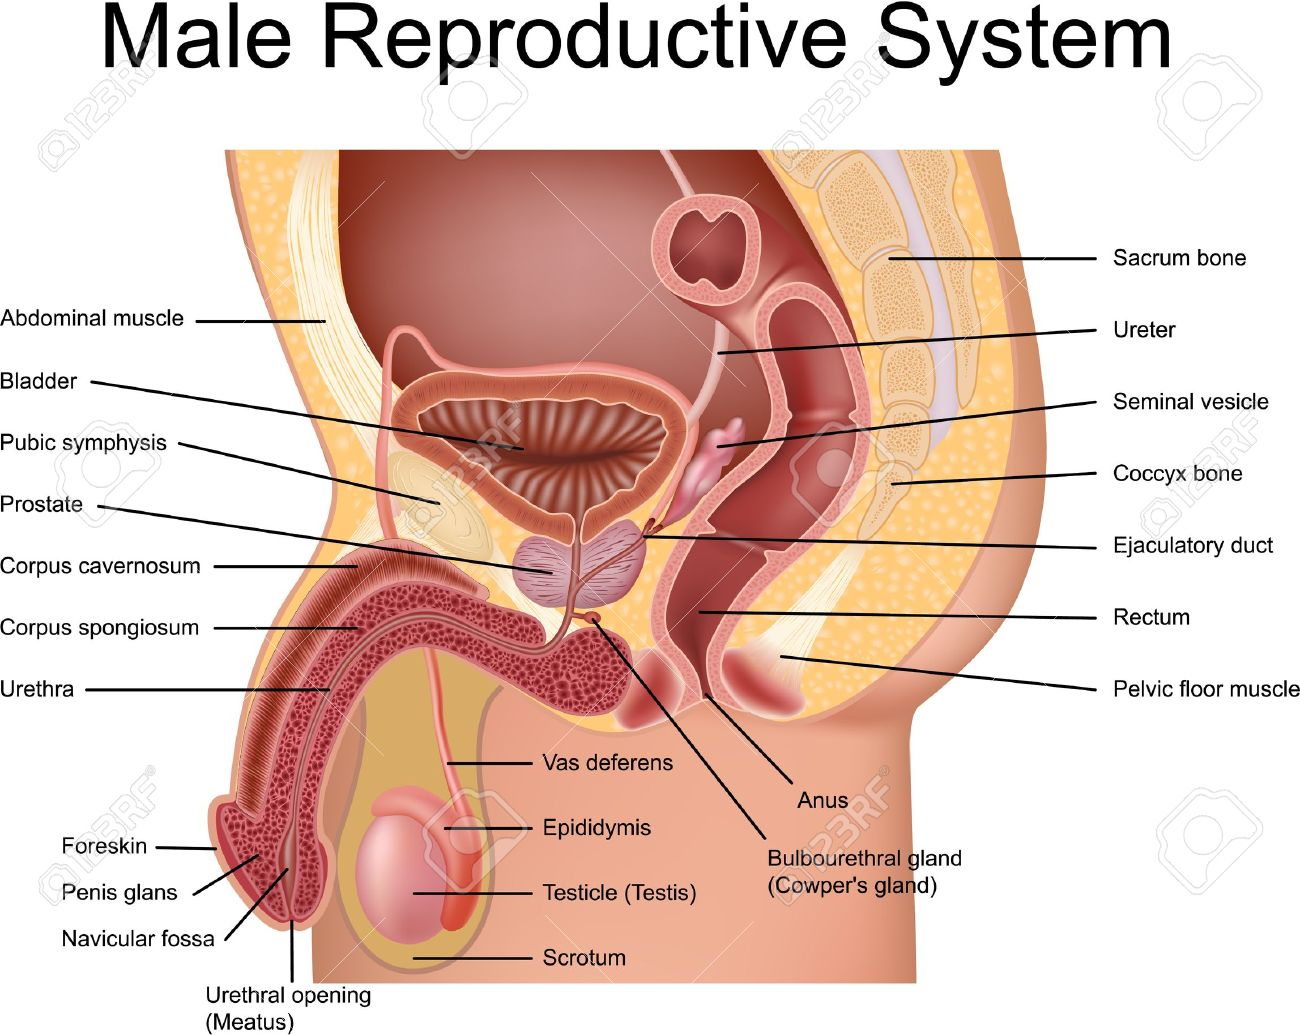 Male human reproductive system diagram tenderness male reproductive system cross section view royalty free cliparts muscles ccuart Choice Image